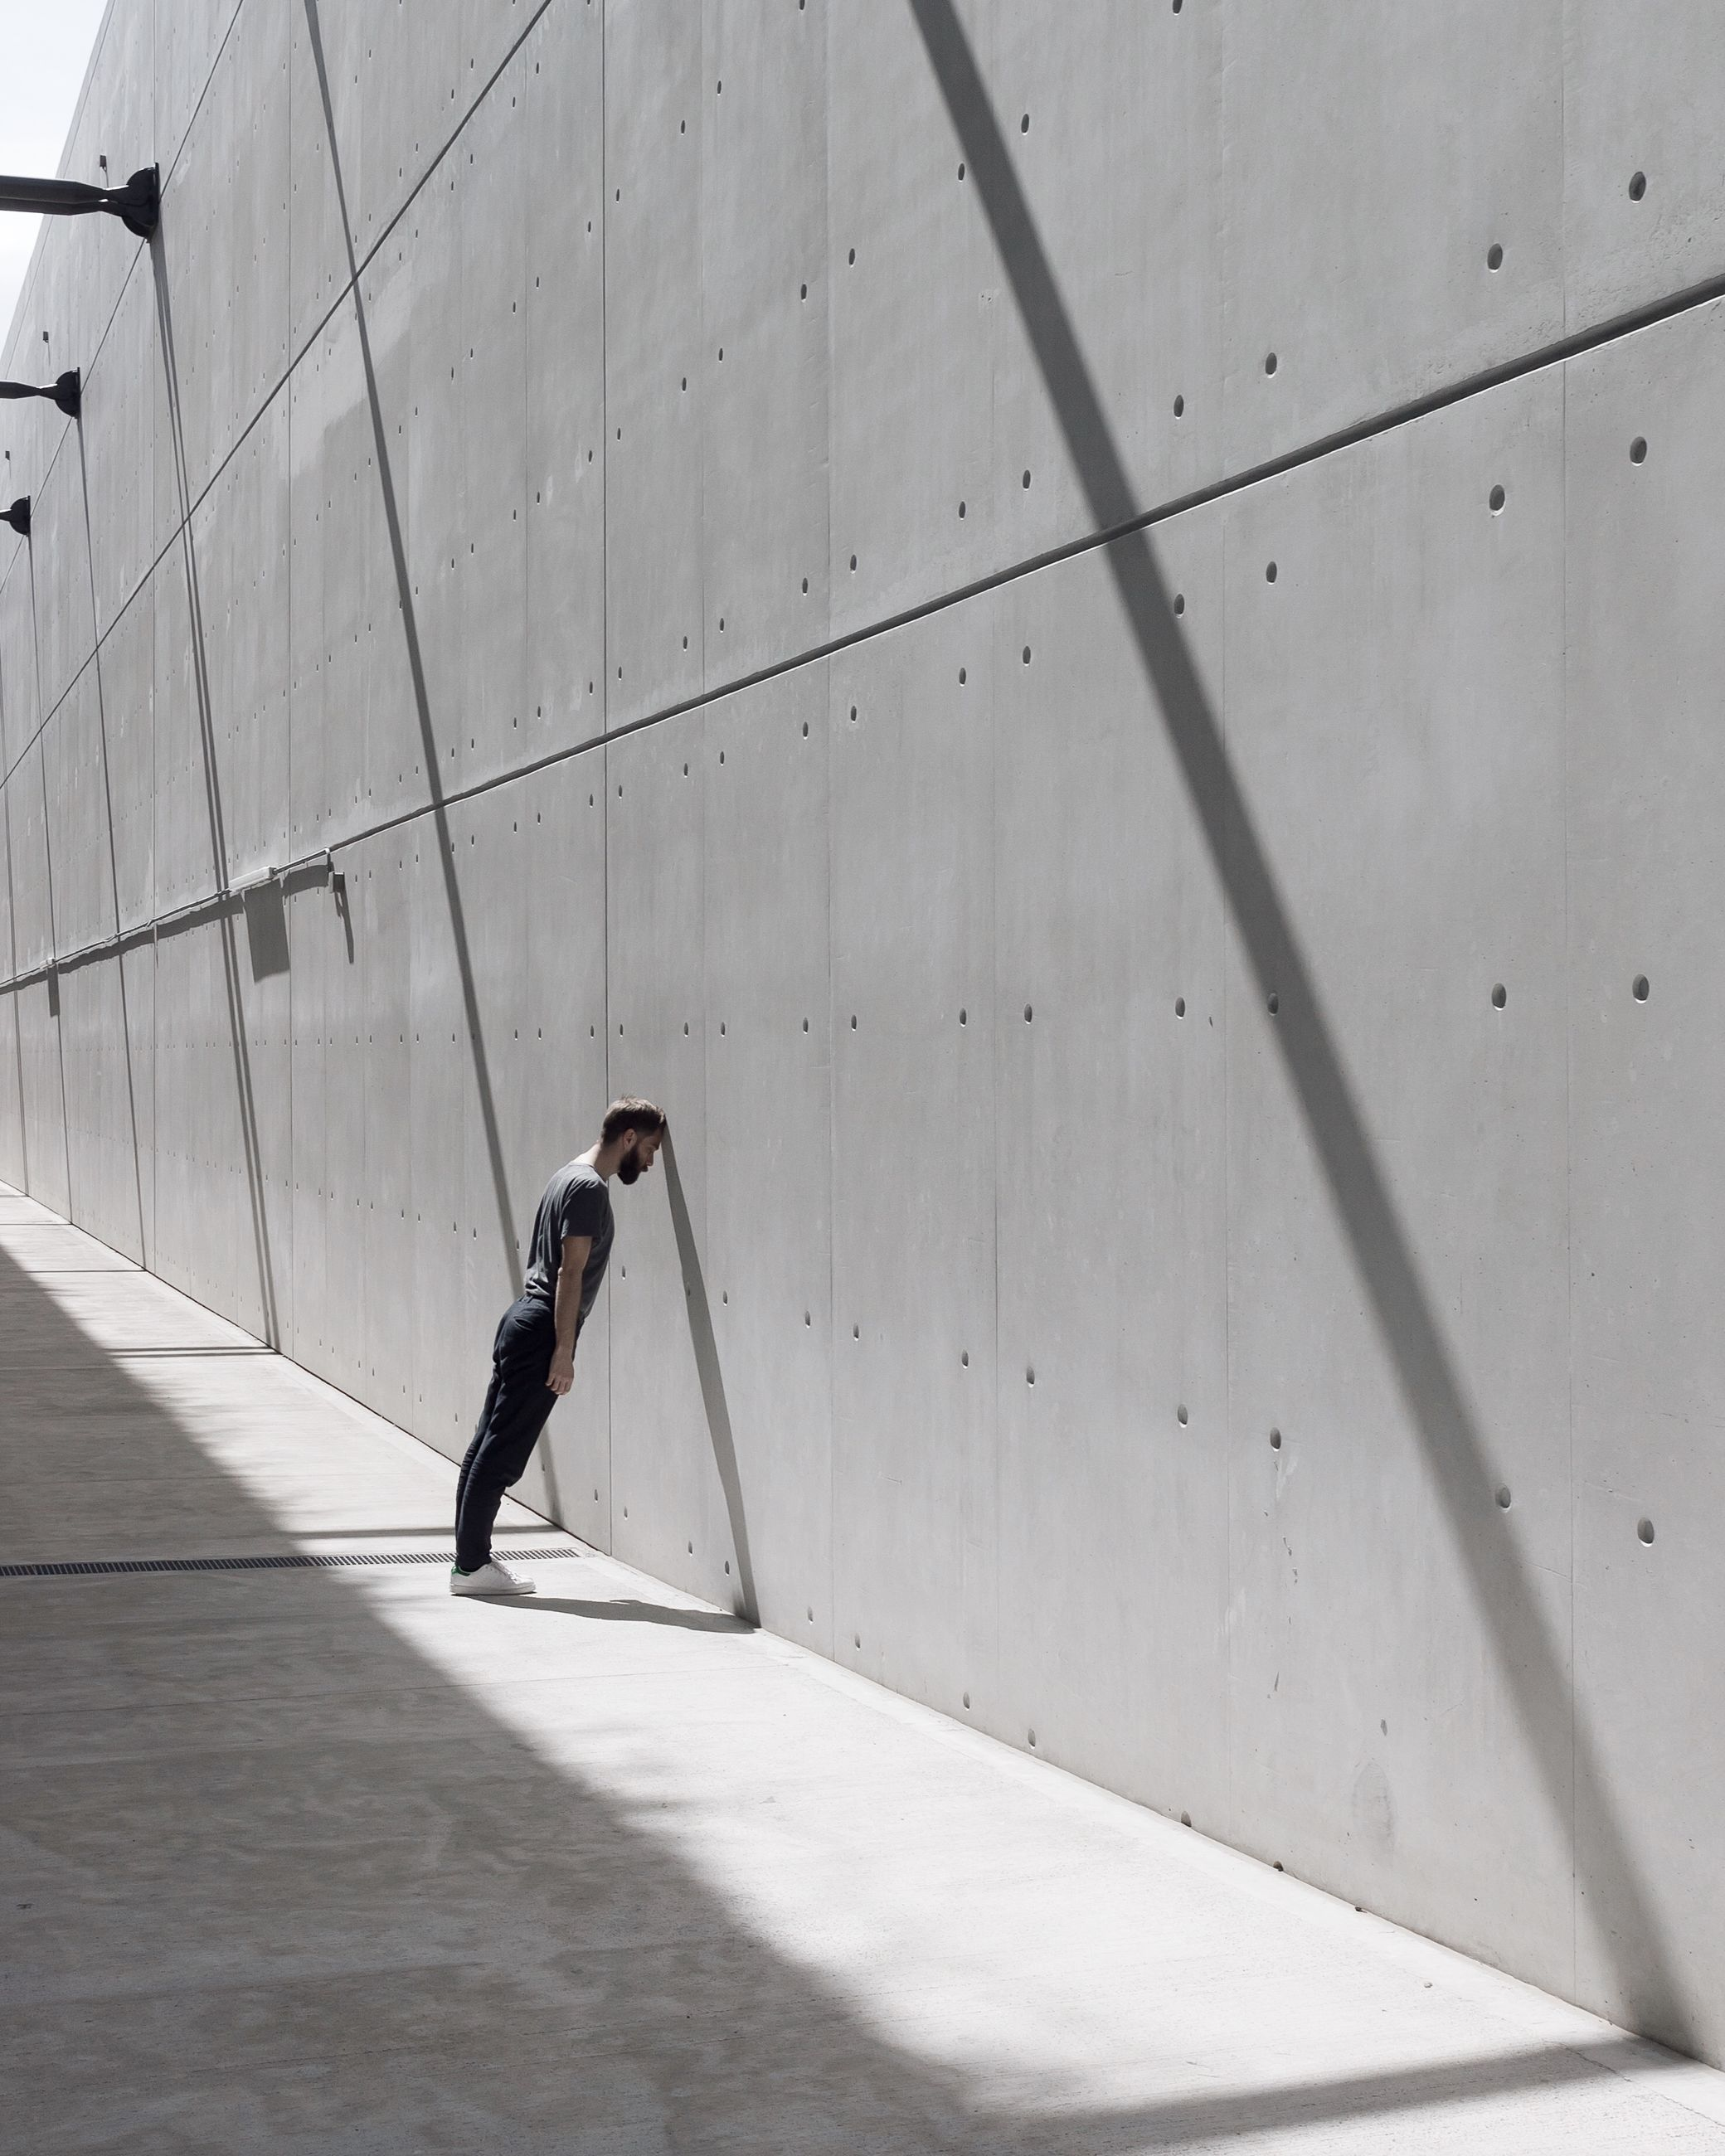 one person, architecture, full length, built structure, real people, wall - building feature, men, walking, leisure activity, day, shadow, side view, indoors, lifestyles, building, casual clothing, sunlight, nature, flooring, concrete